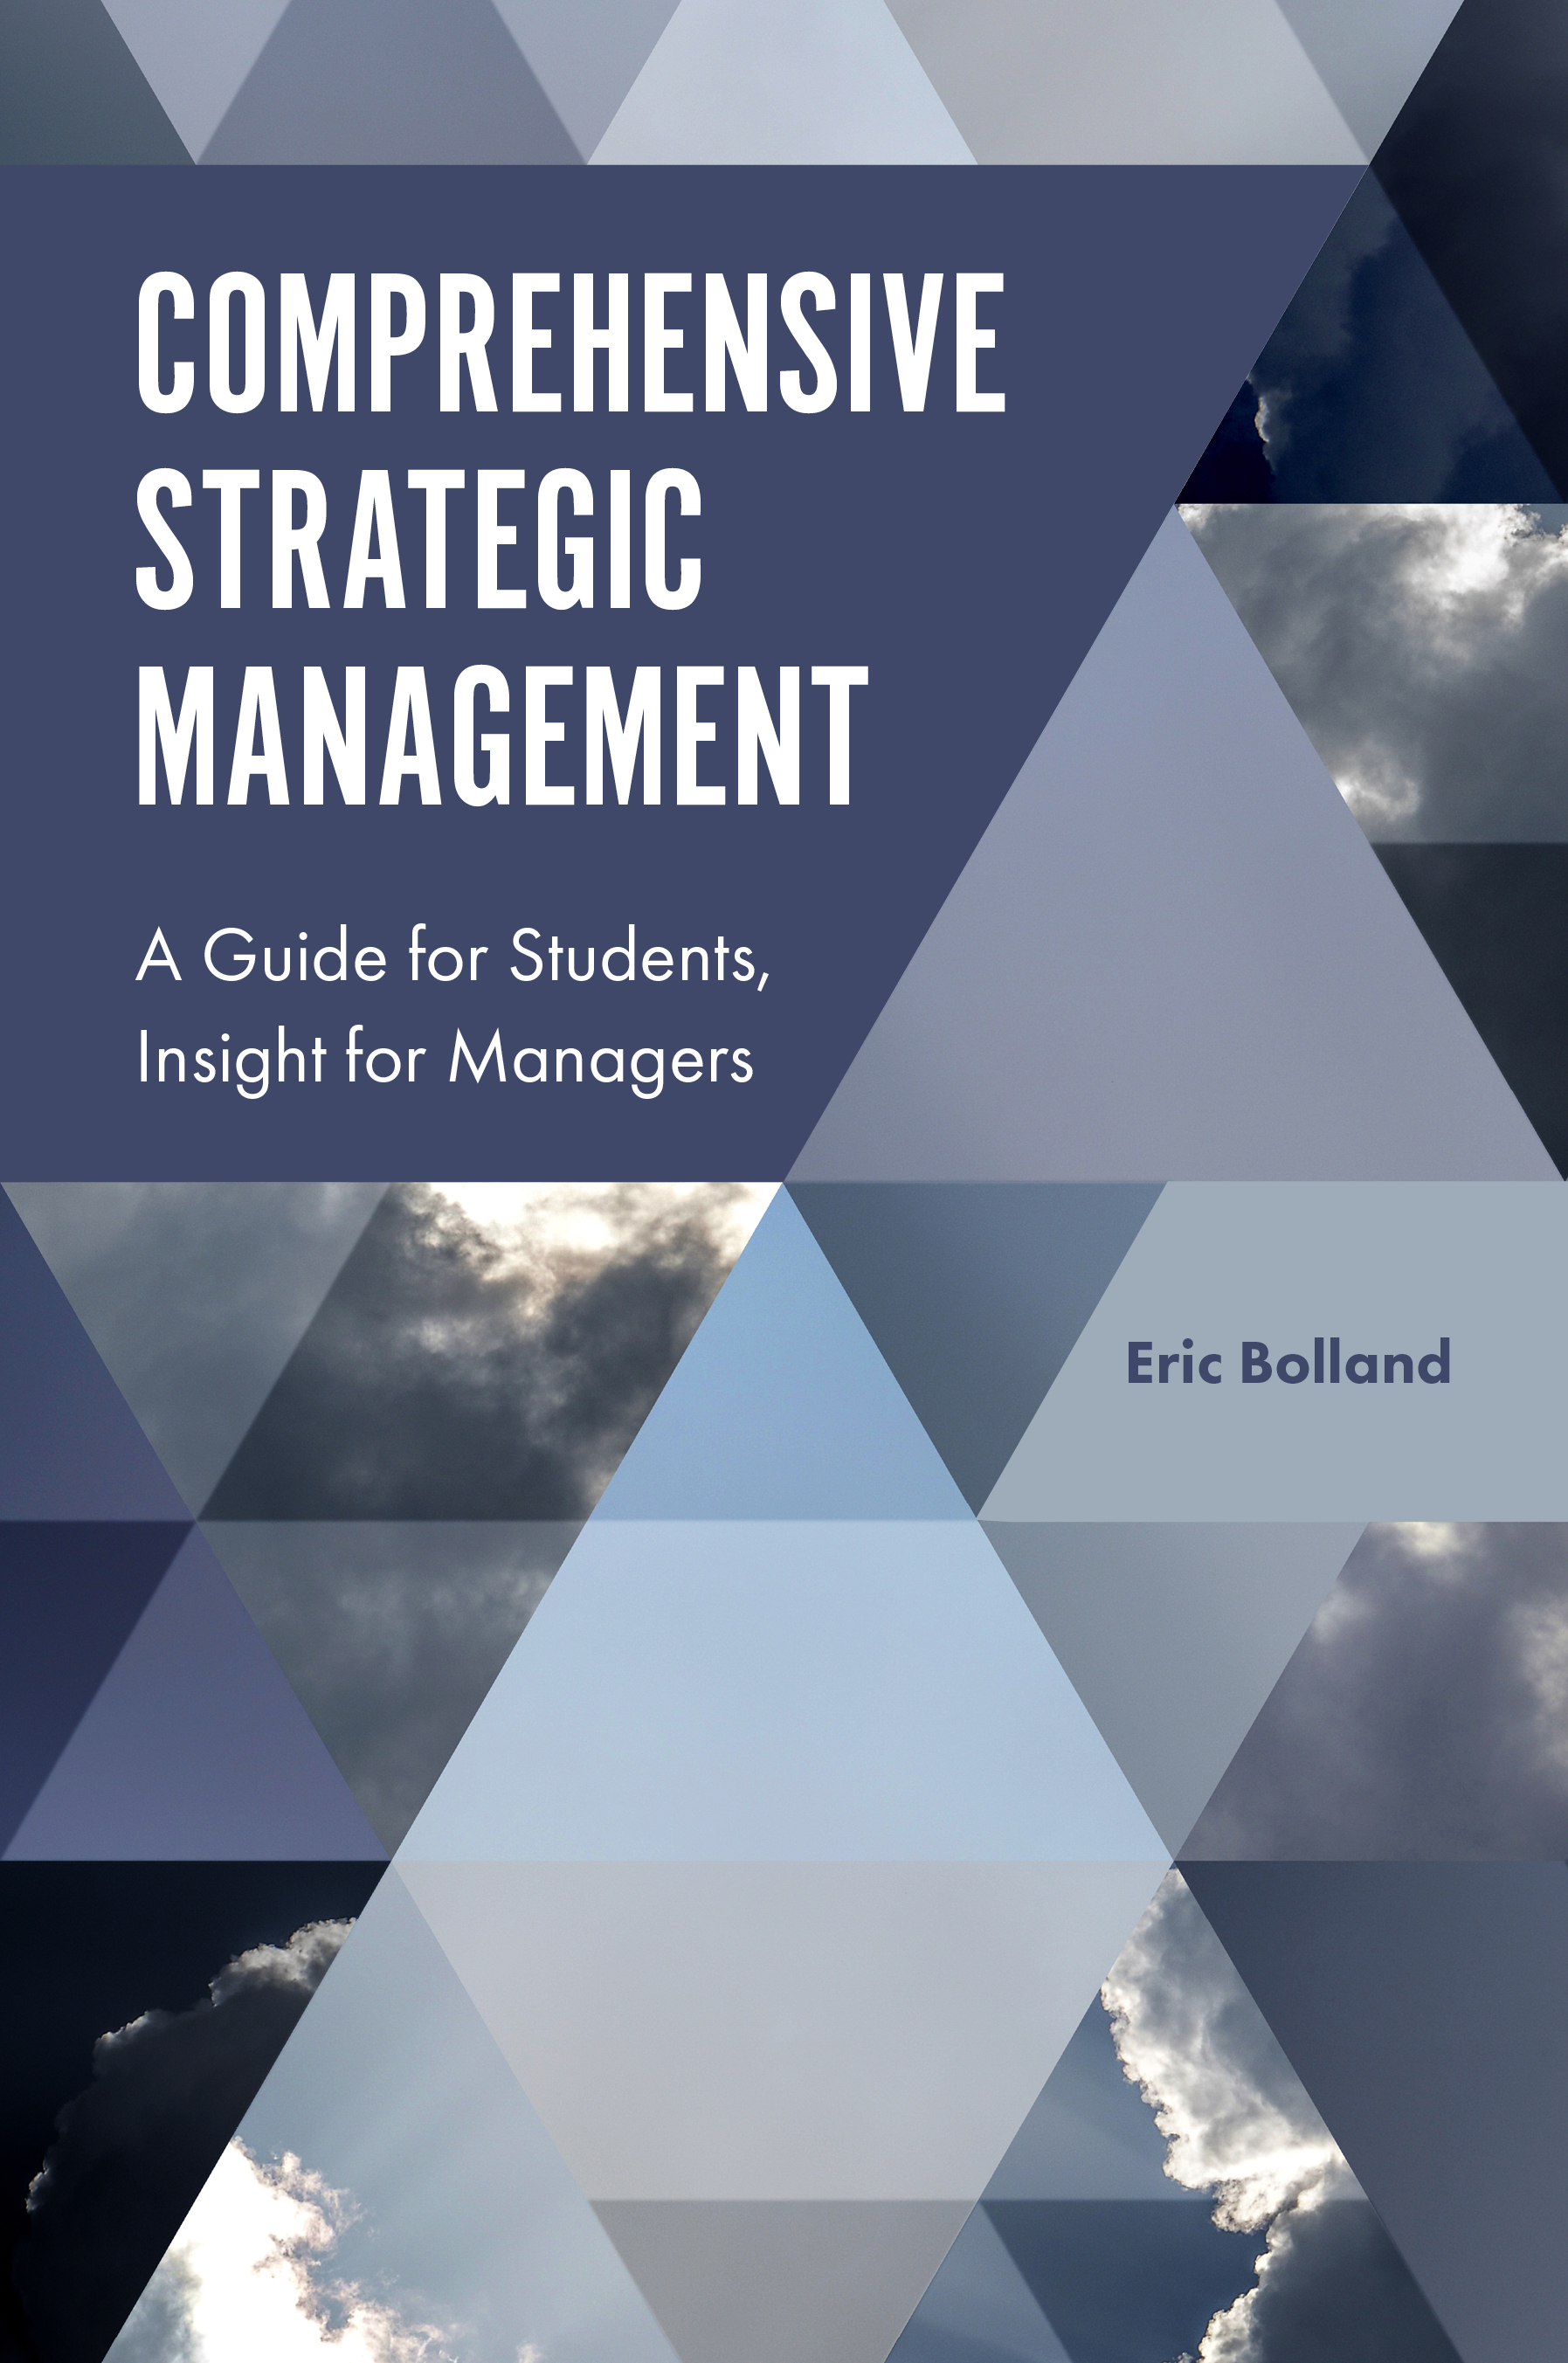 Book cover for Comprehensive Strategic Management:  A Guide for Students, Insight for Managers a book by Eric J. Bolland